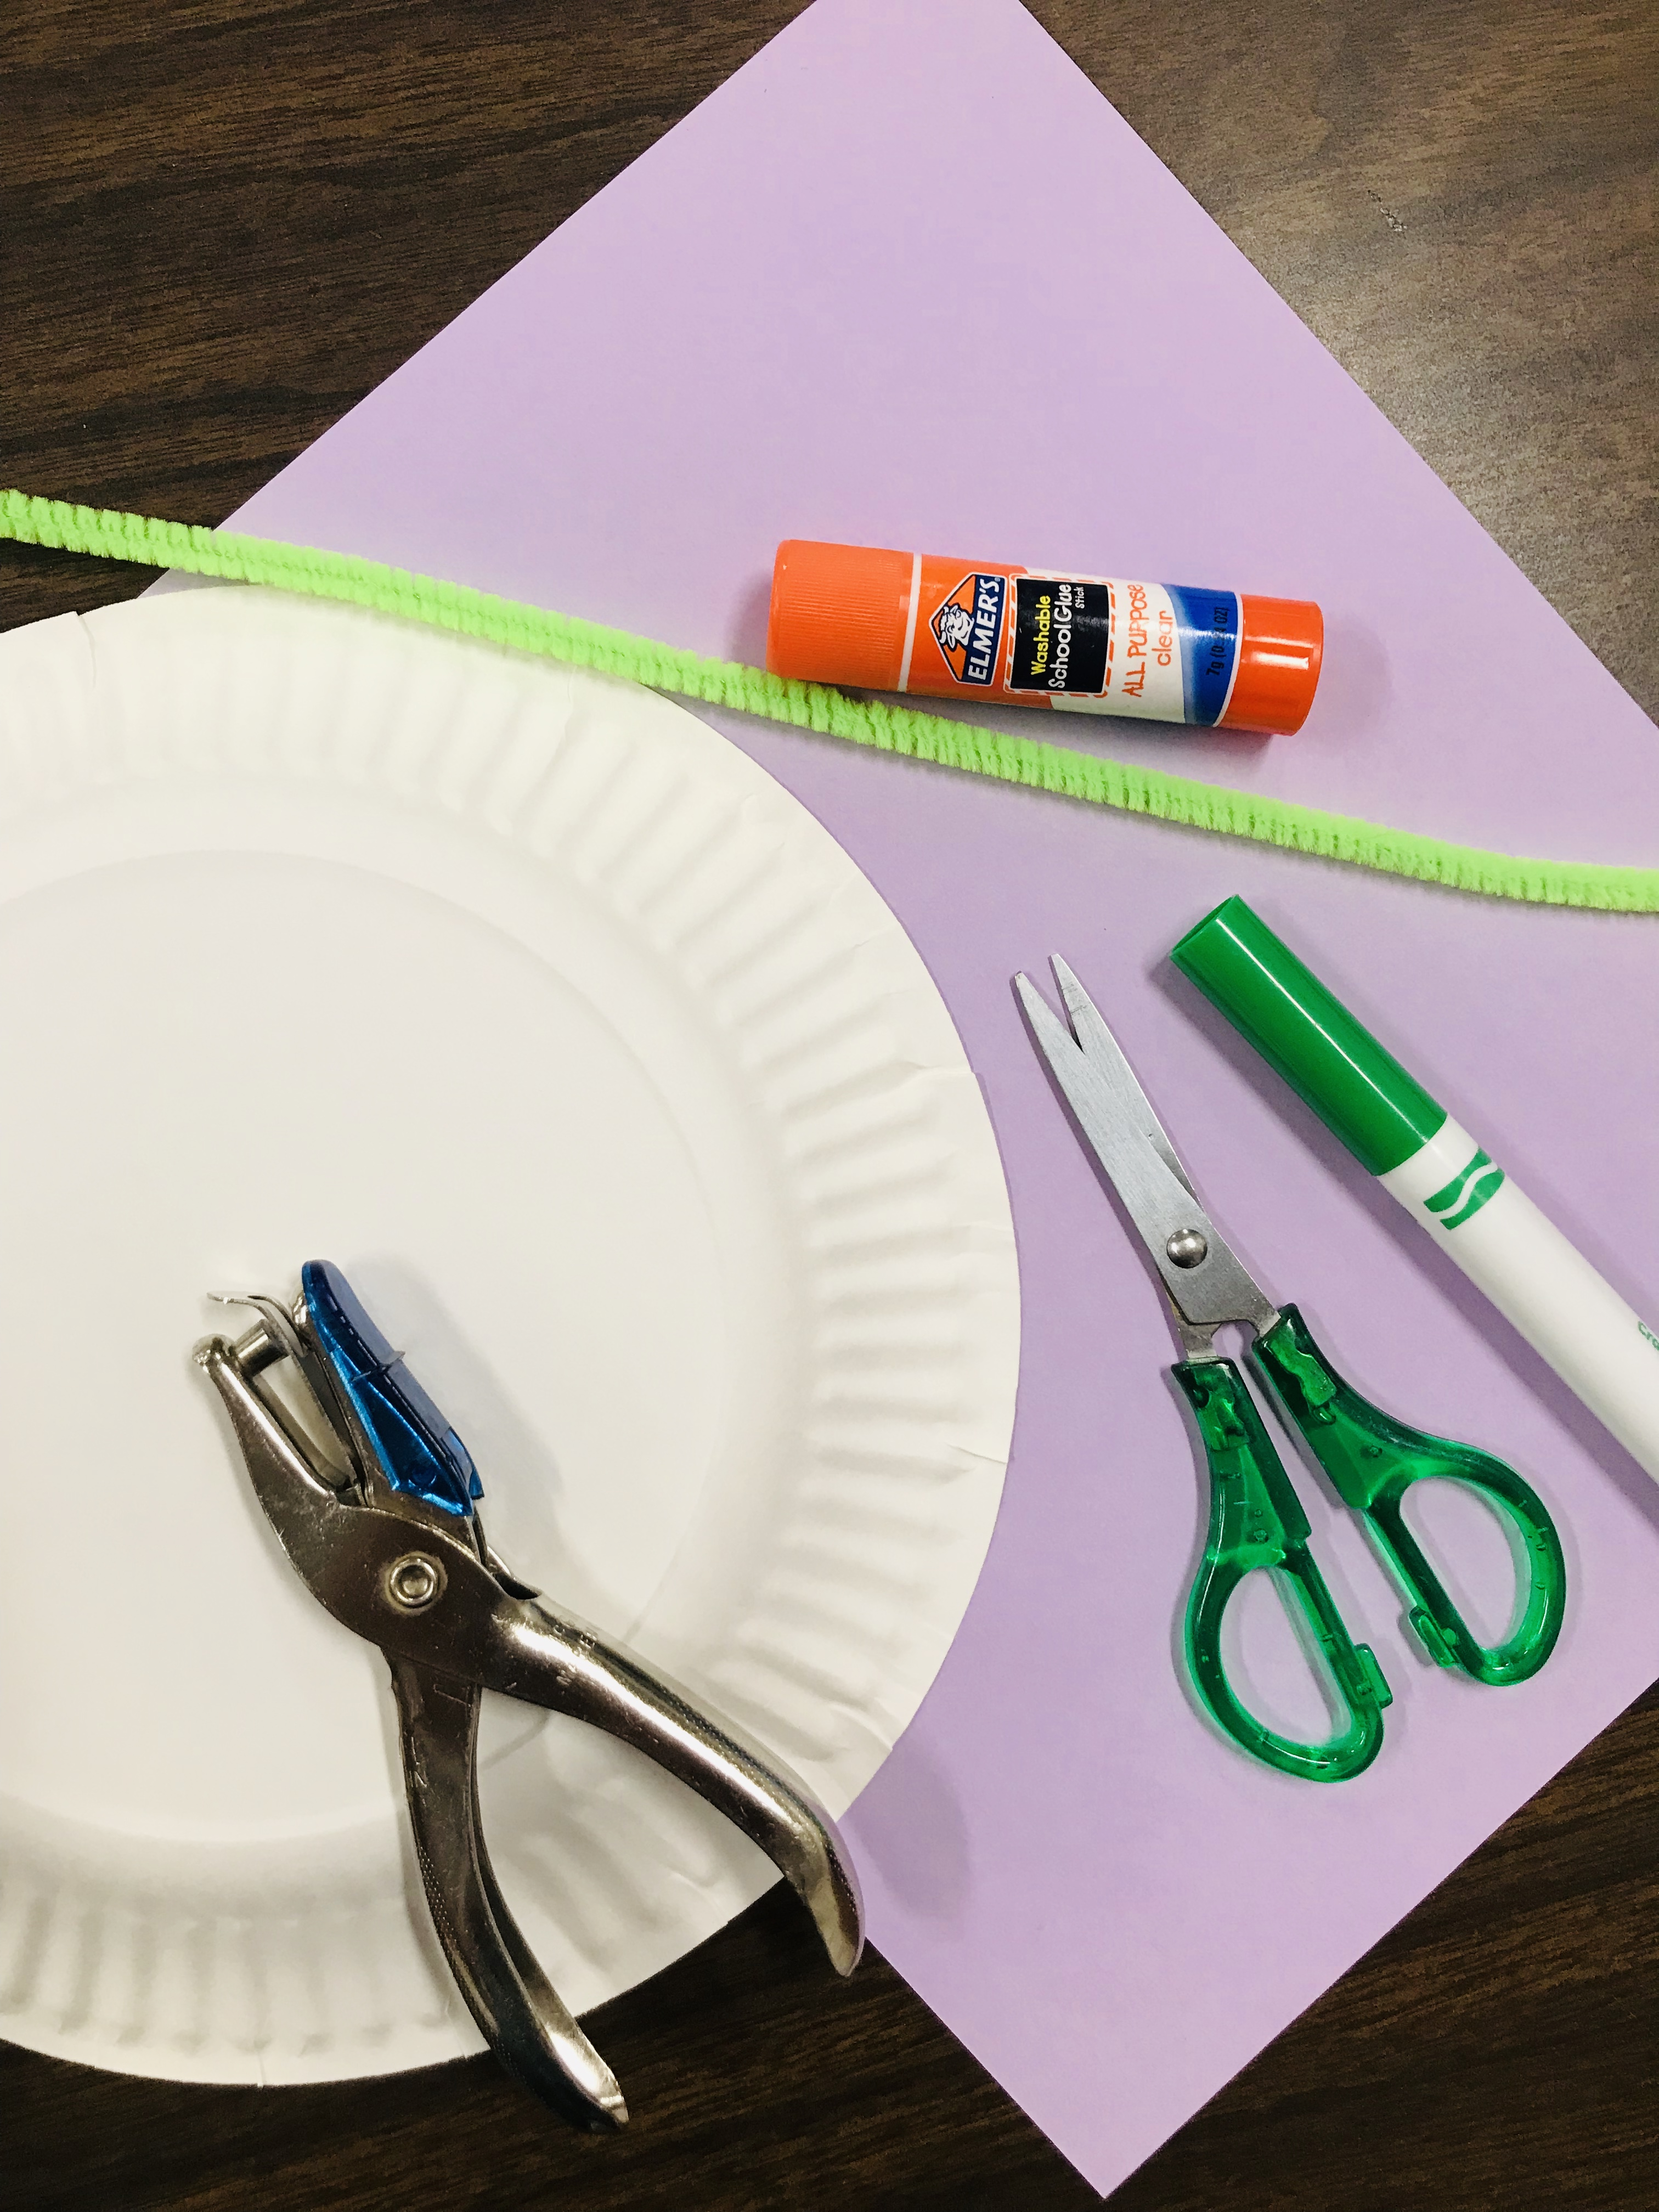 Paper puncher, plate, sheet with scissors, marker, and glue